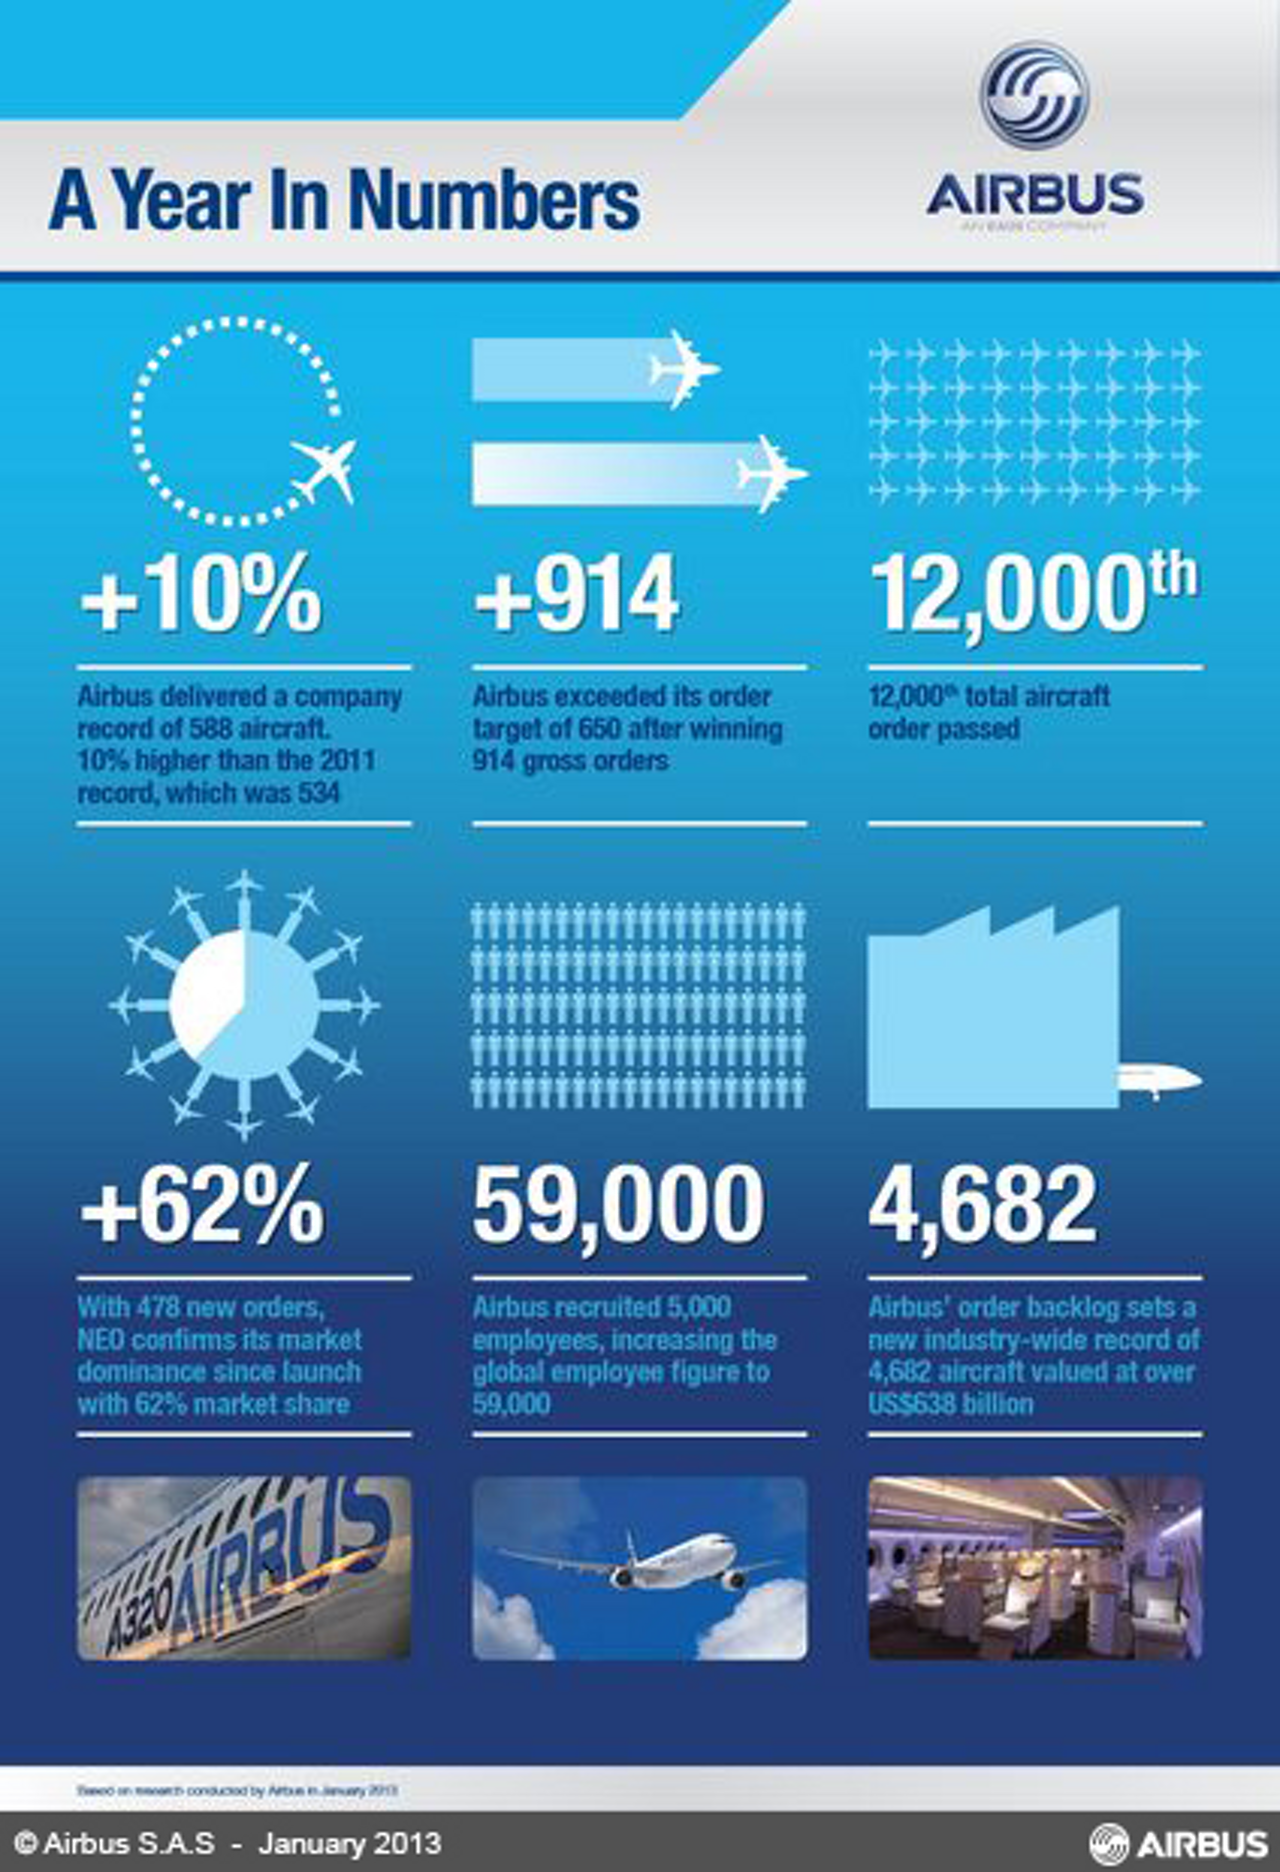 Key facts and figures of the Airbus 2012 results.